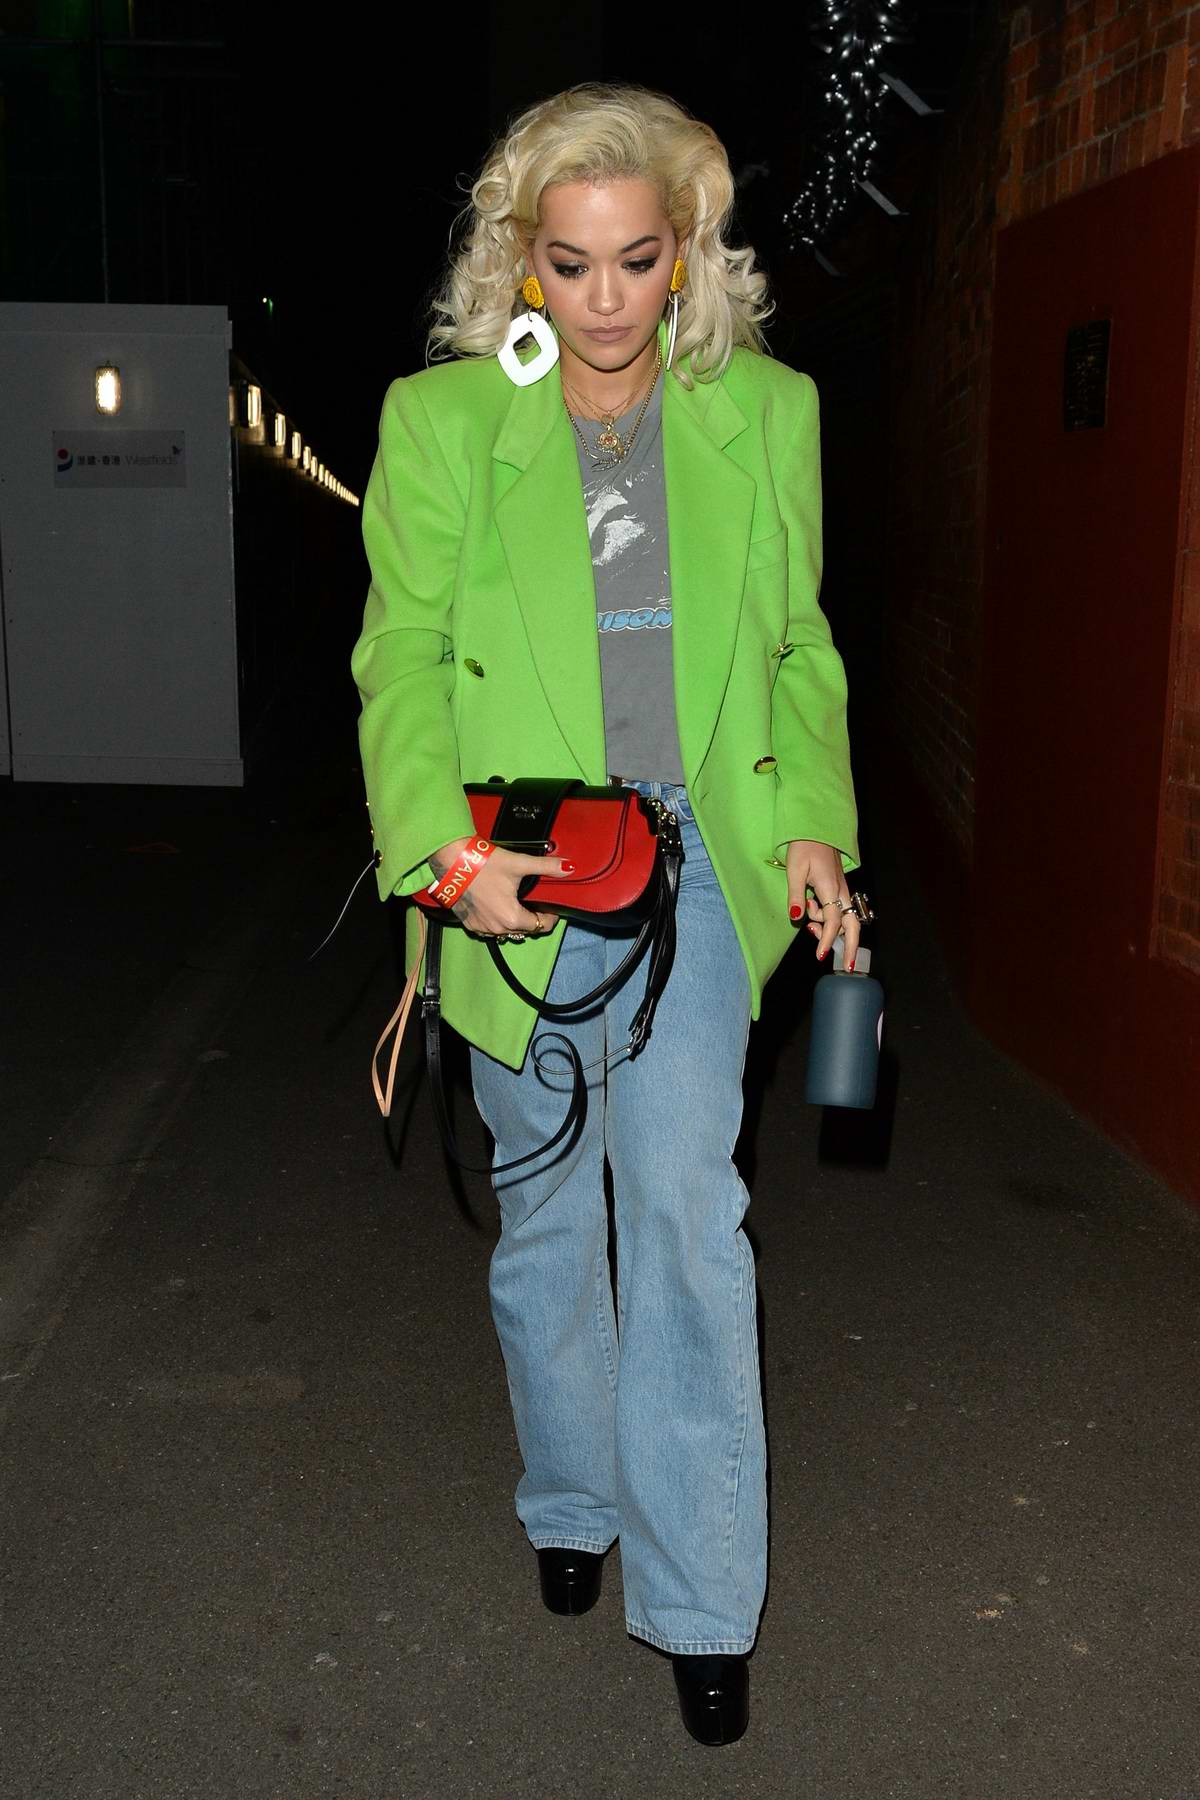 Rita Ora spotted in a bright green blazer and jeans as she leaves Shepherd's Bush Empire in London, UK